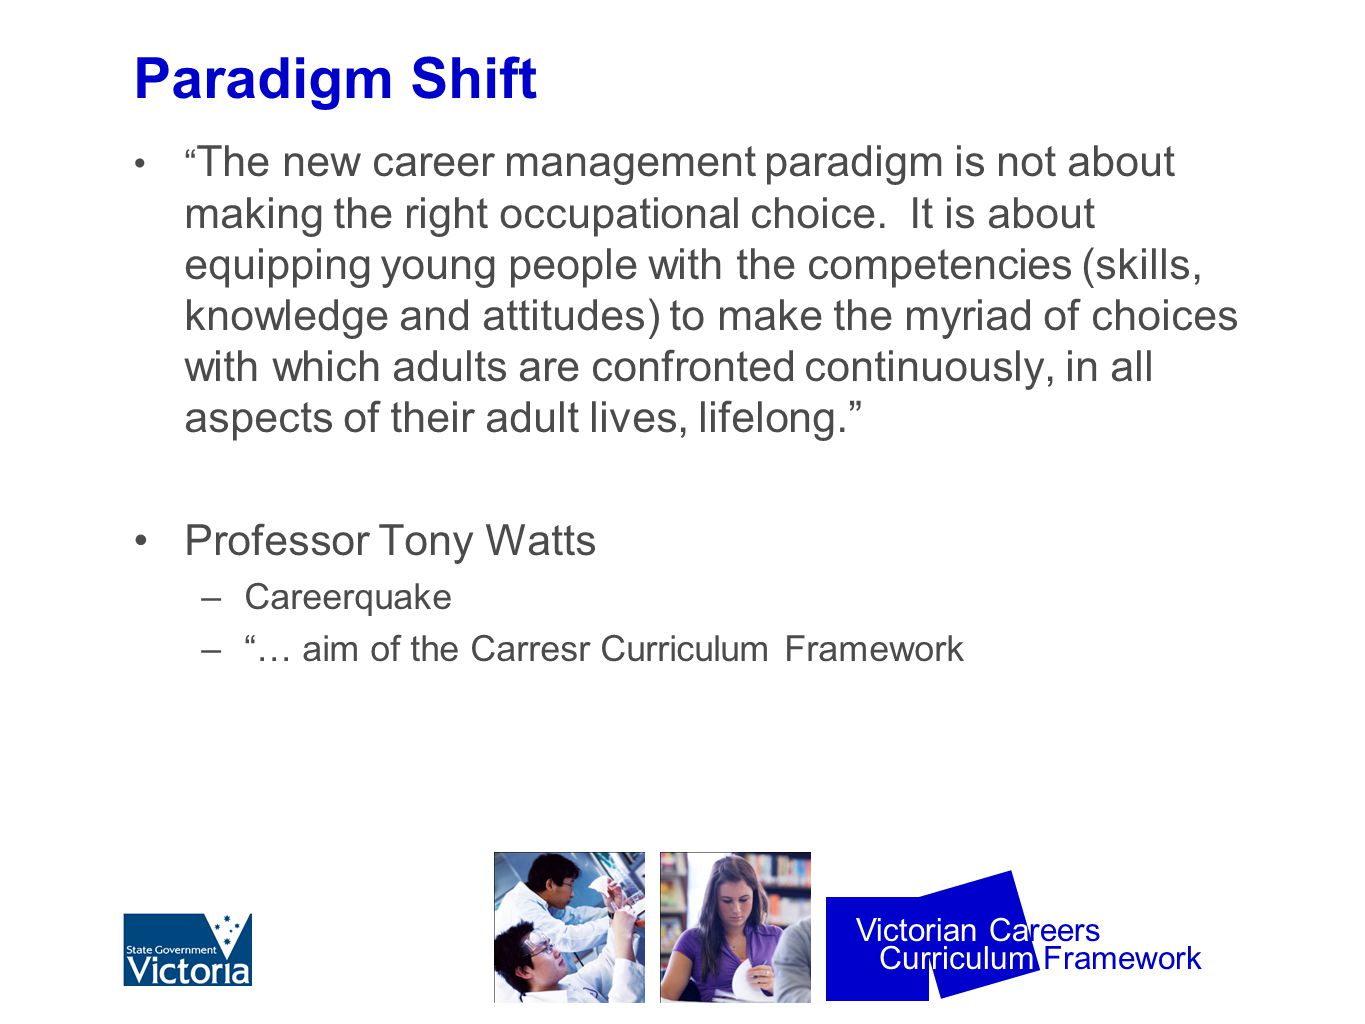 Curriculum Framework Victorian Careers Paradigm Shift The new career management paradigm is not about making the right occupational choice.